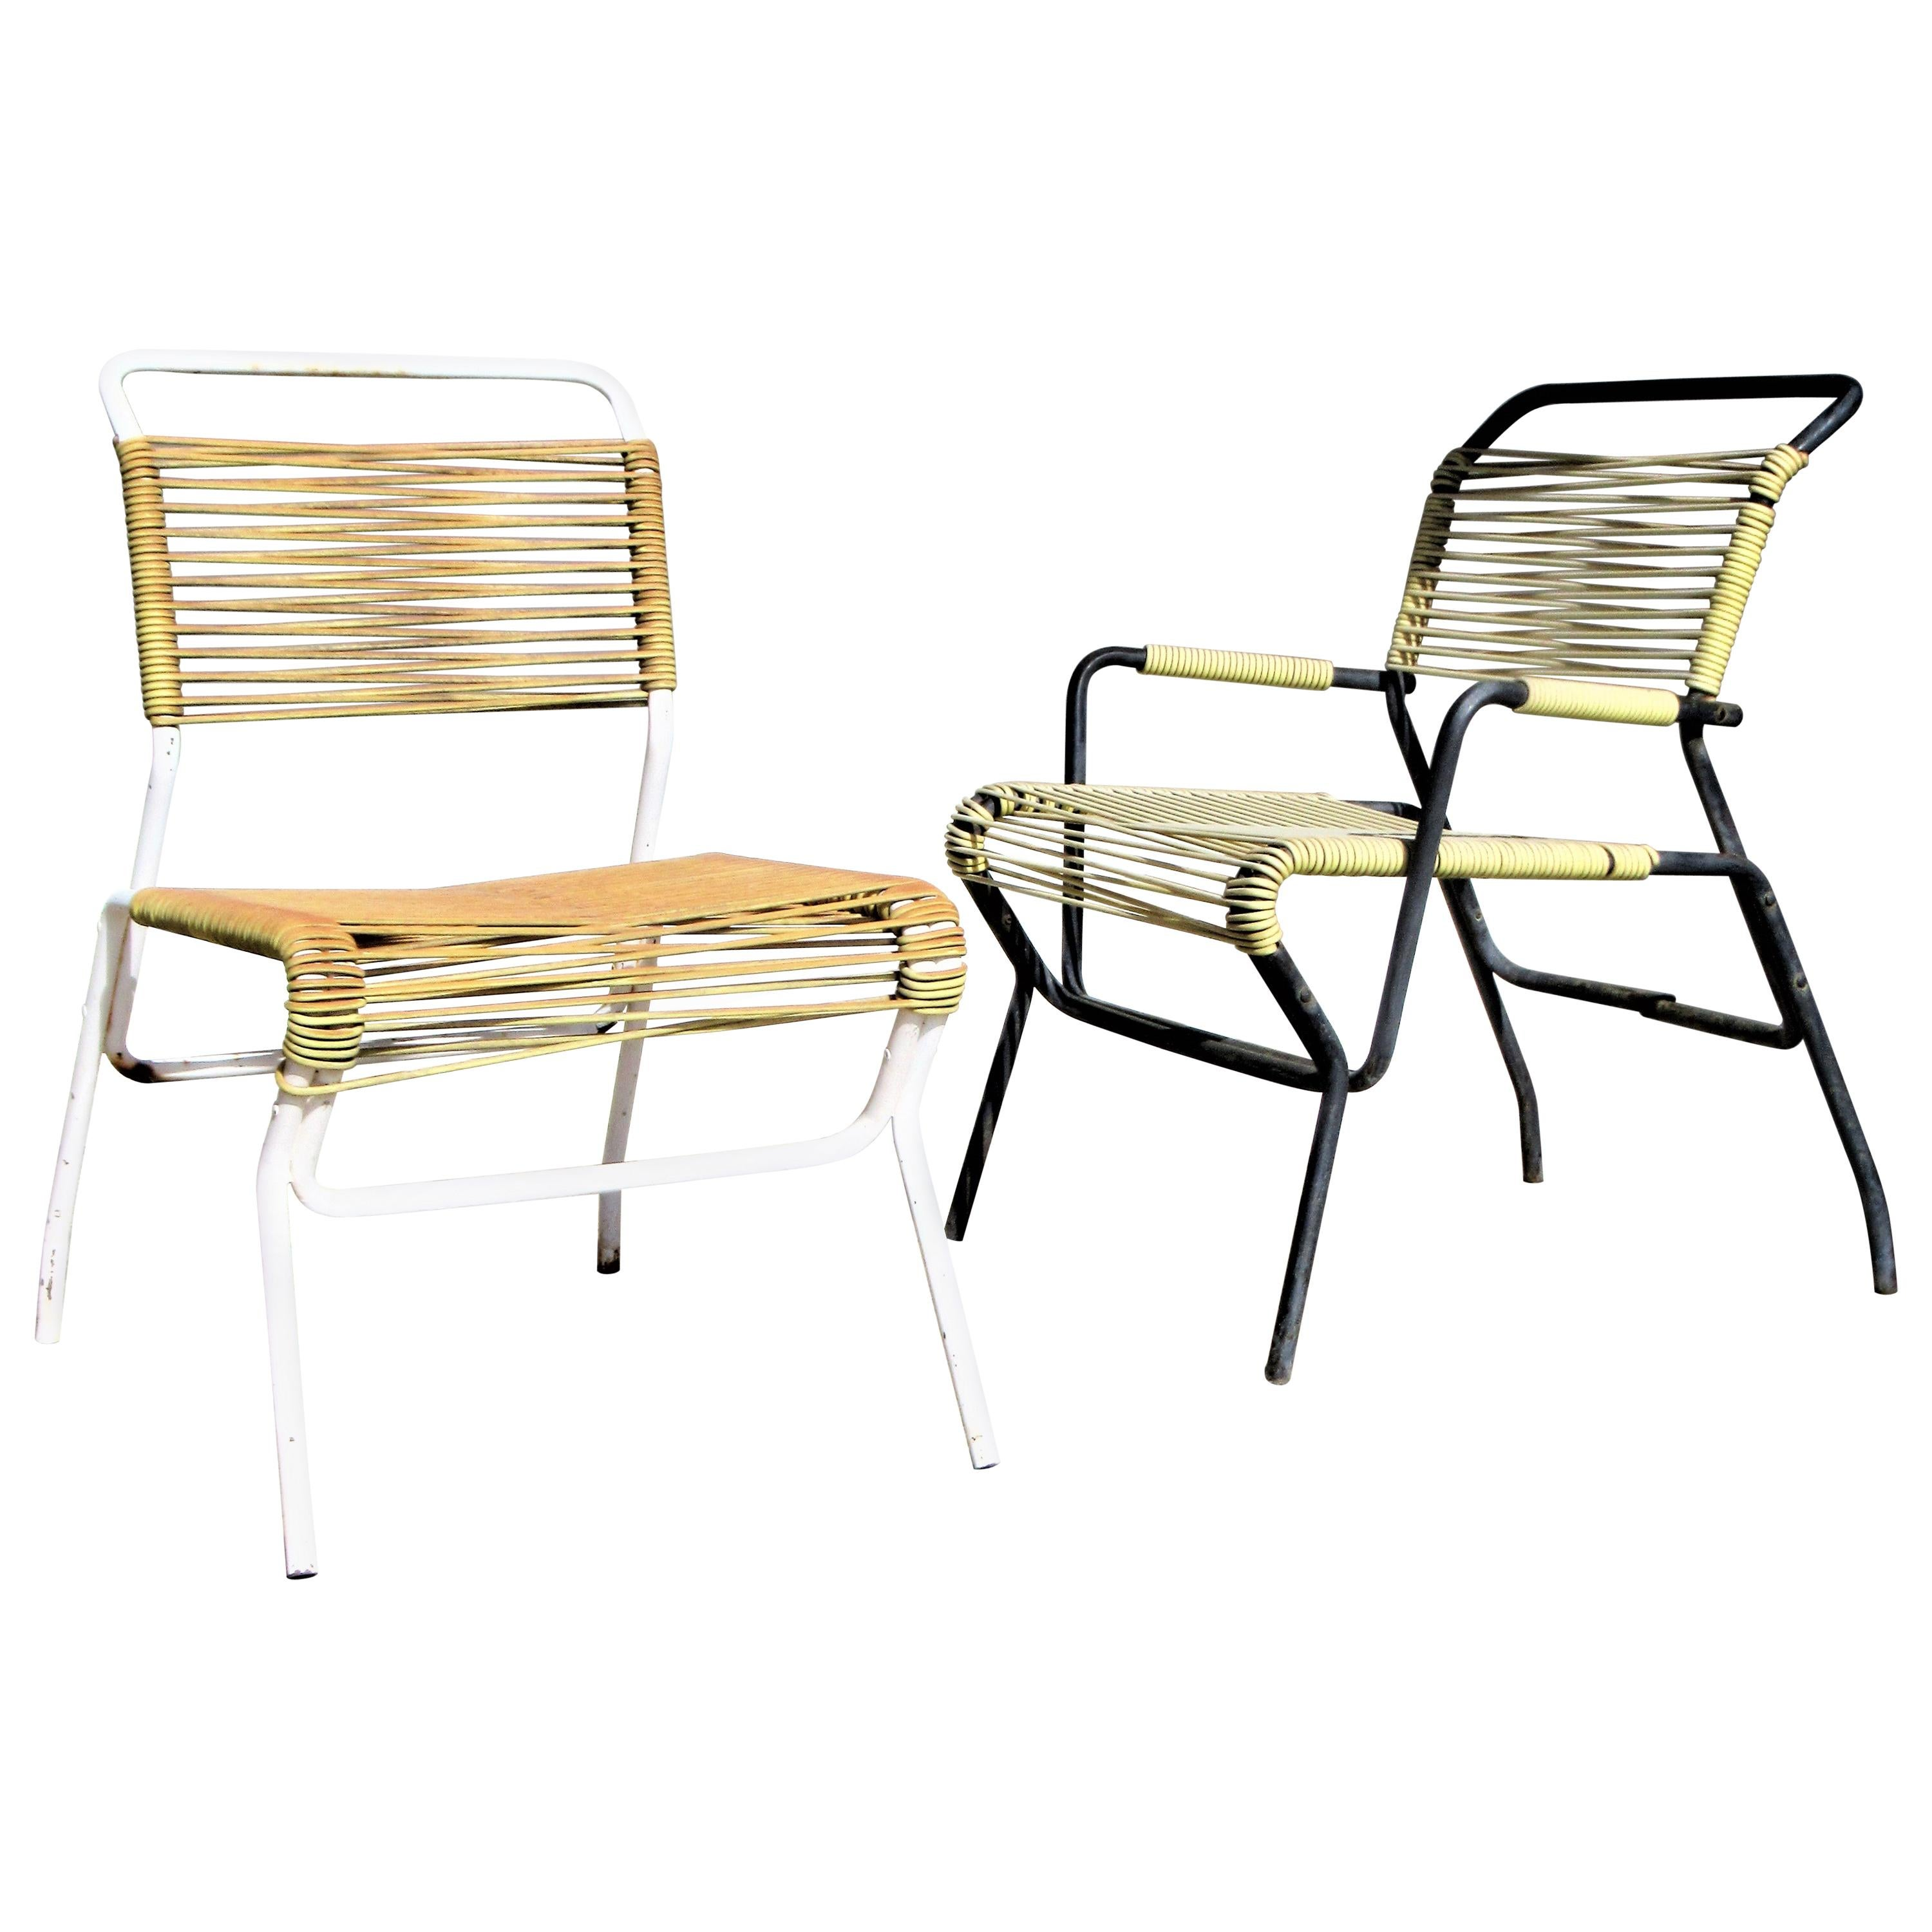 Sculptural Iron Patio Chairs by Surf Line